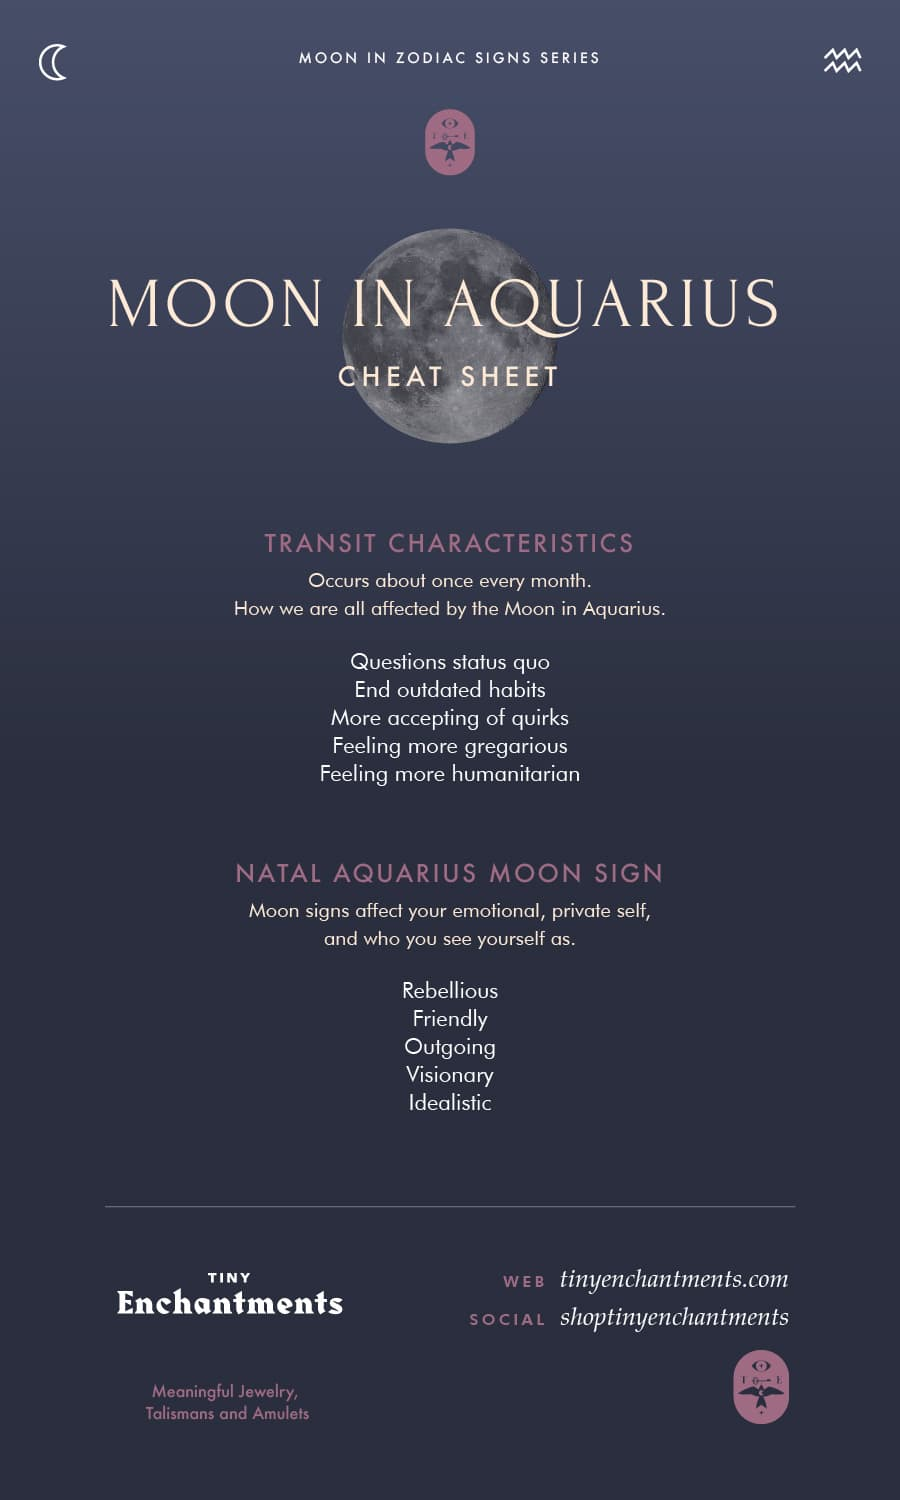 Aquarius Moon Sign and Moon in Aquarius Transit Meanings Full Infographic